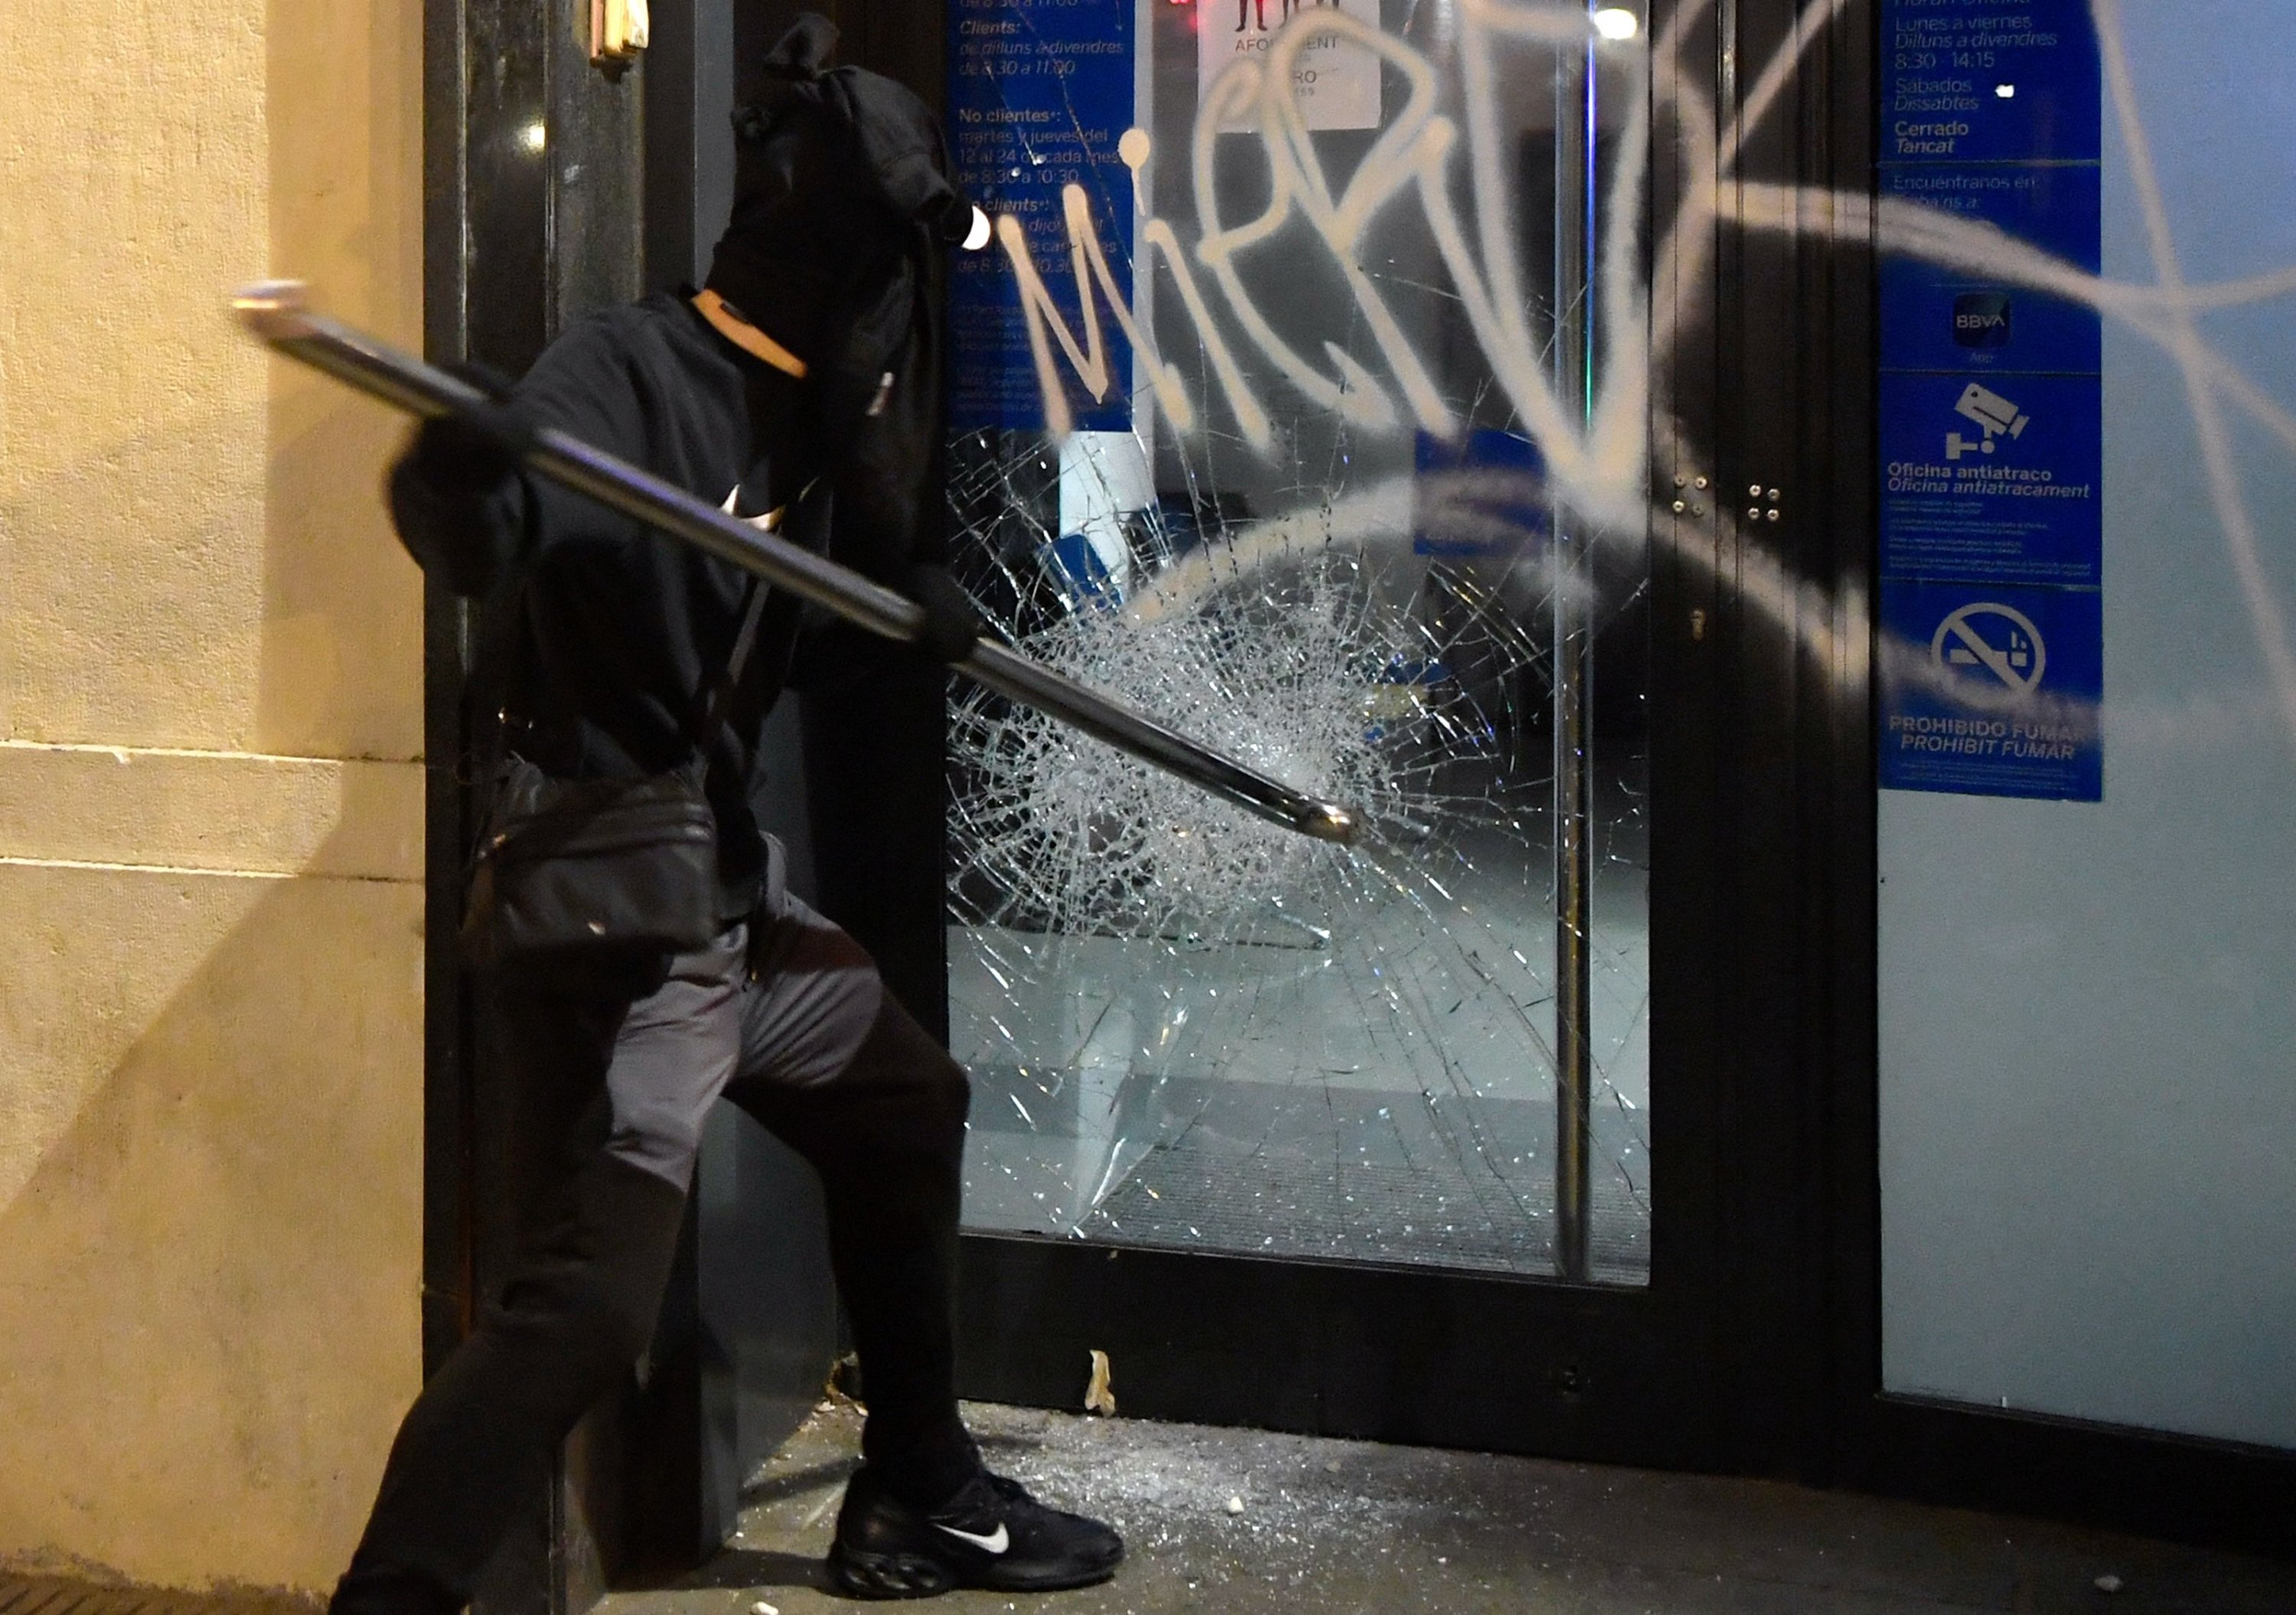 A protester breaks the glass of a bank branch's door during clashes with Catalan regional police forces Mossos d'Esquadra after a demonstration against the imprisonment of Spanish rapper Pablo Hasel in Barcelona on Feb. 19, 2021. (AFP Photo)